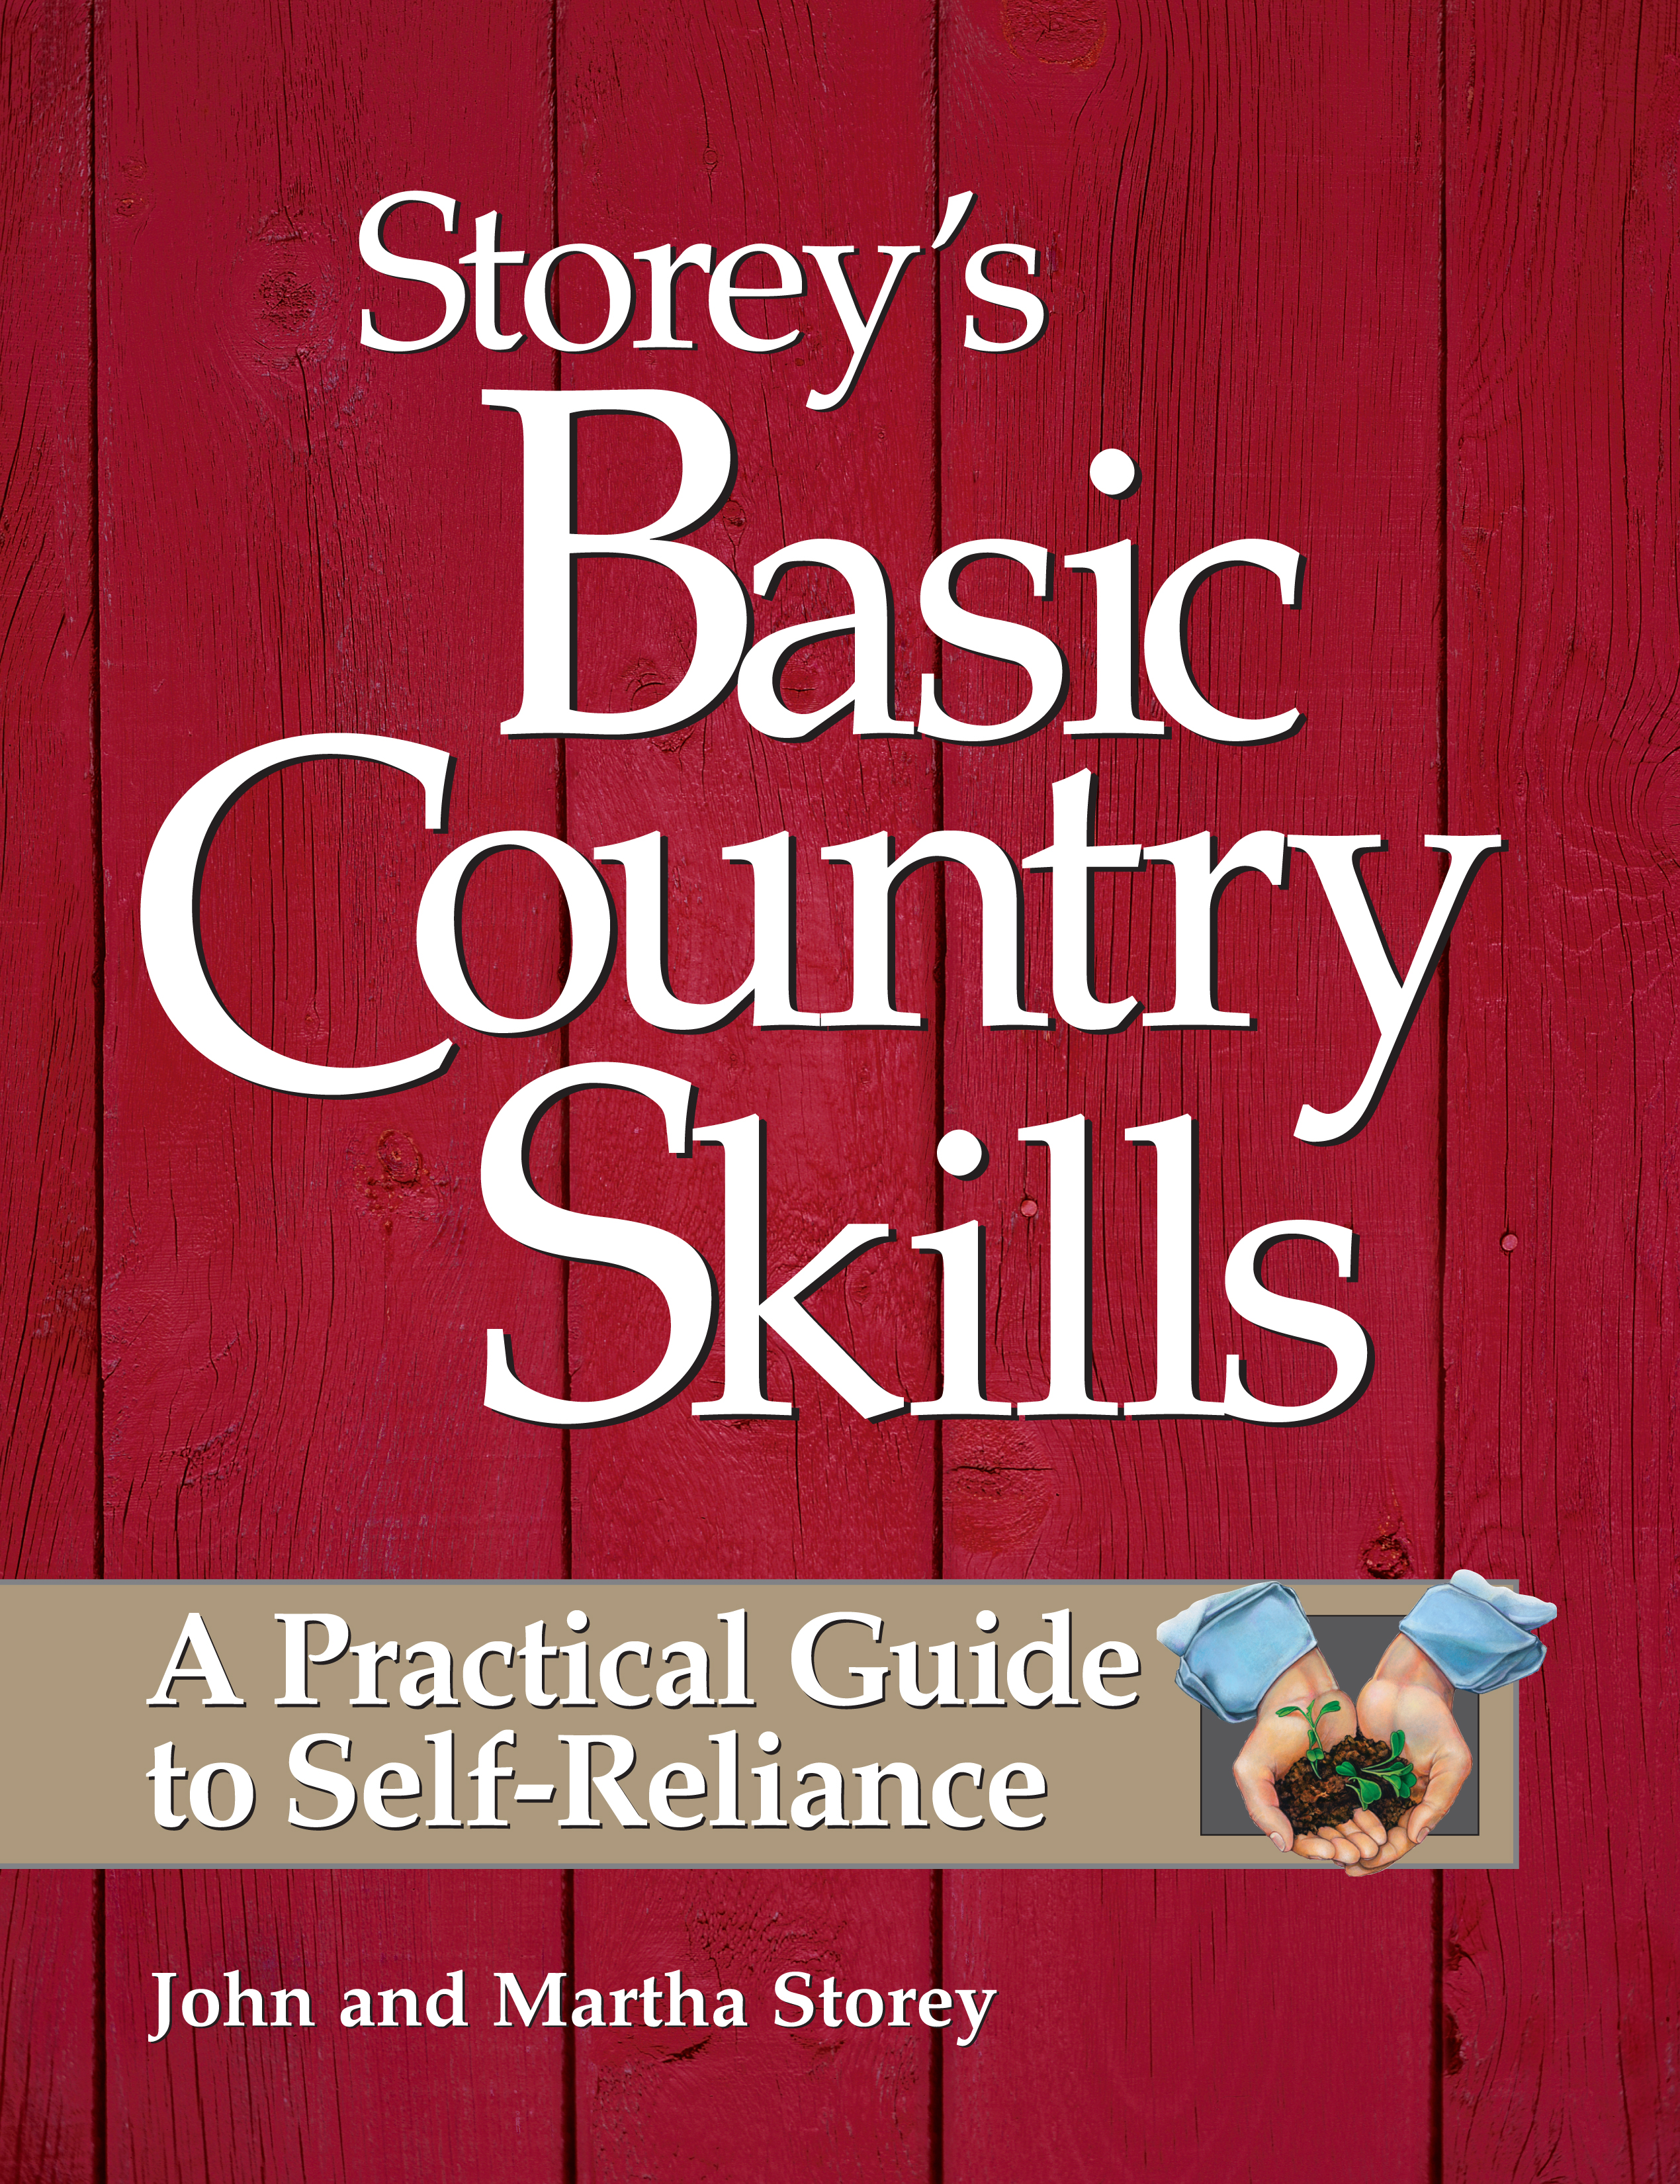 Storey's Basic Country Skills A Practical Guide to Self-Reliance - John Storey